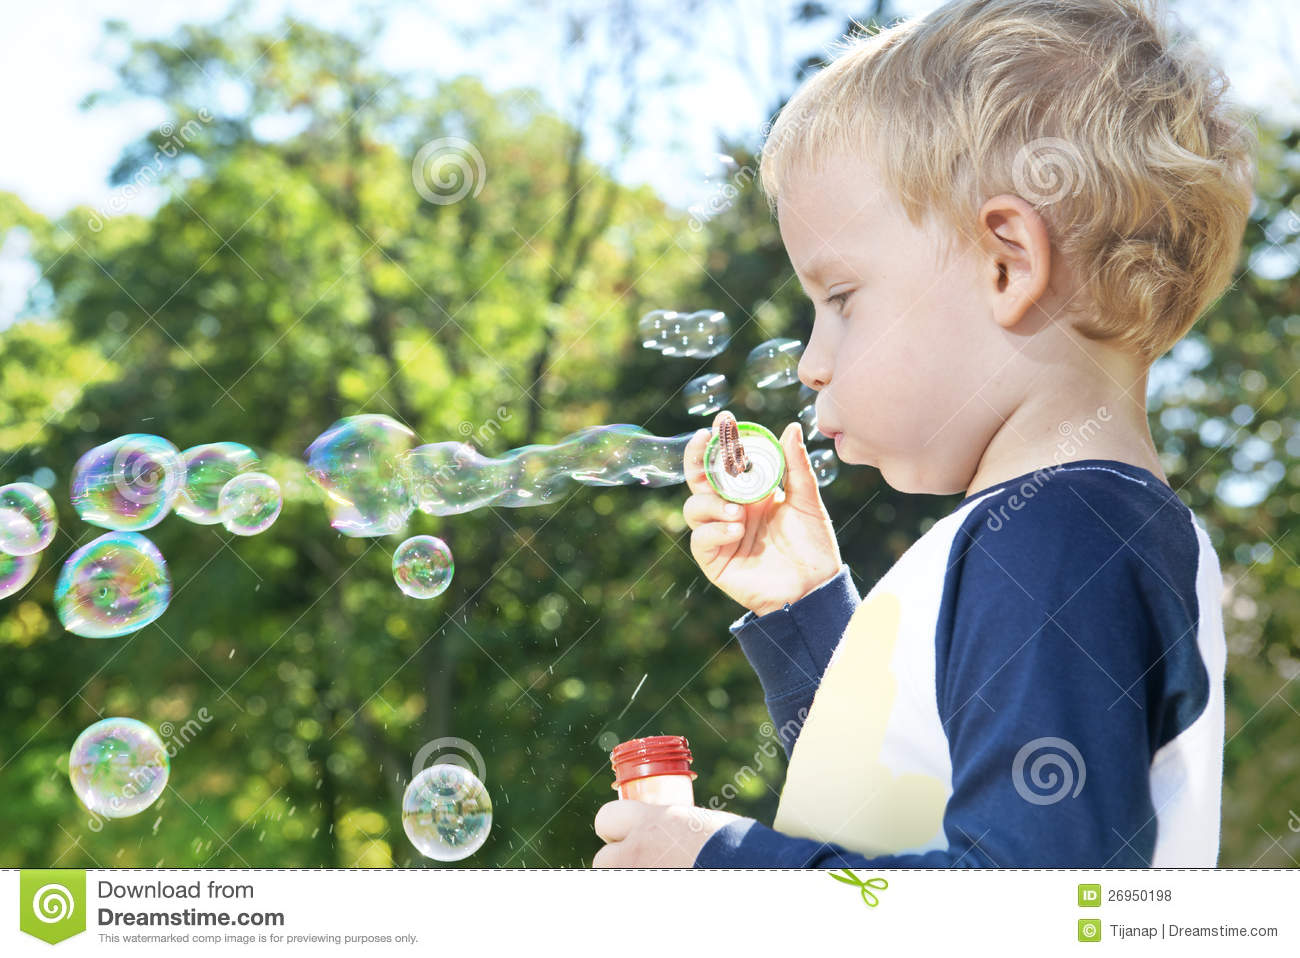 Child Making Soap Bubbles Stock Photo Image Of Outdoors 26950198